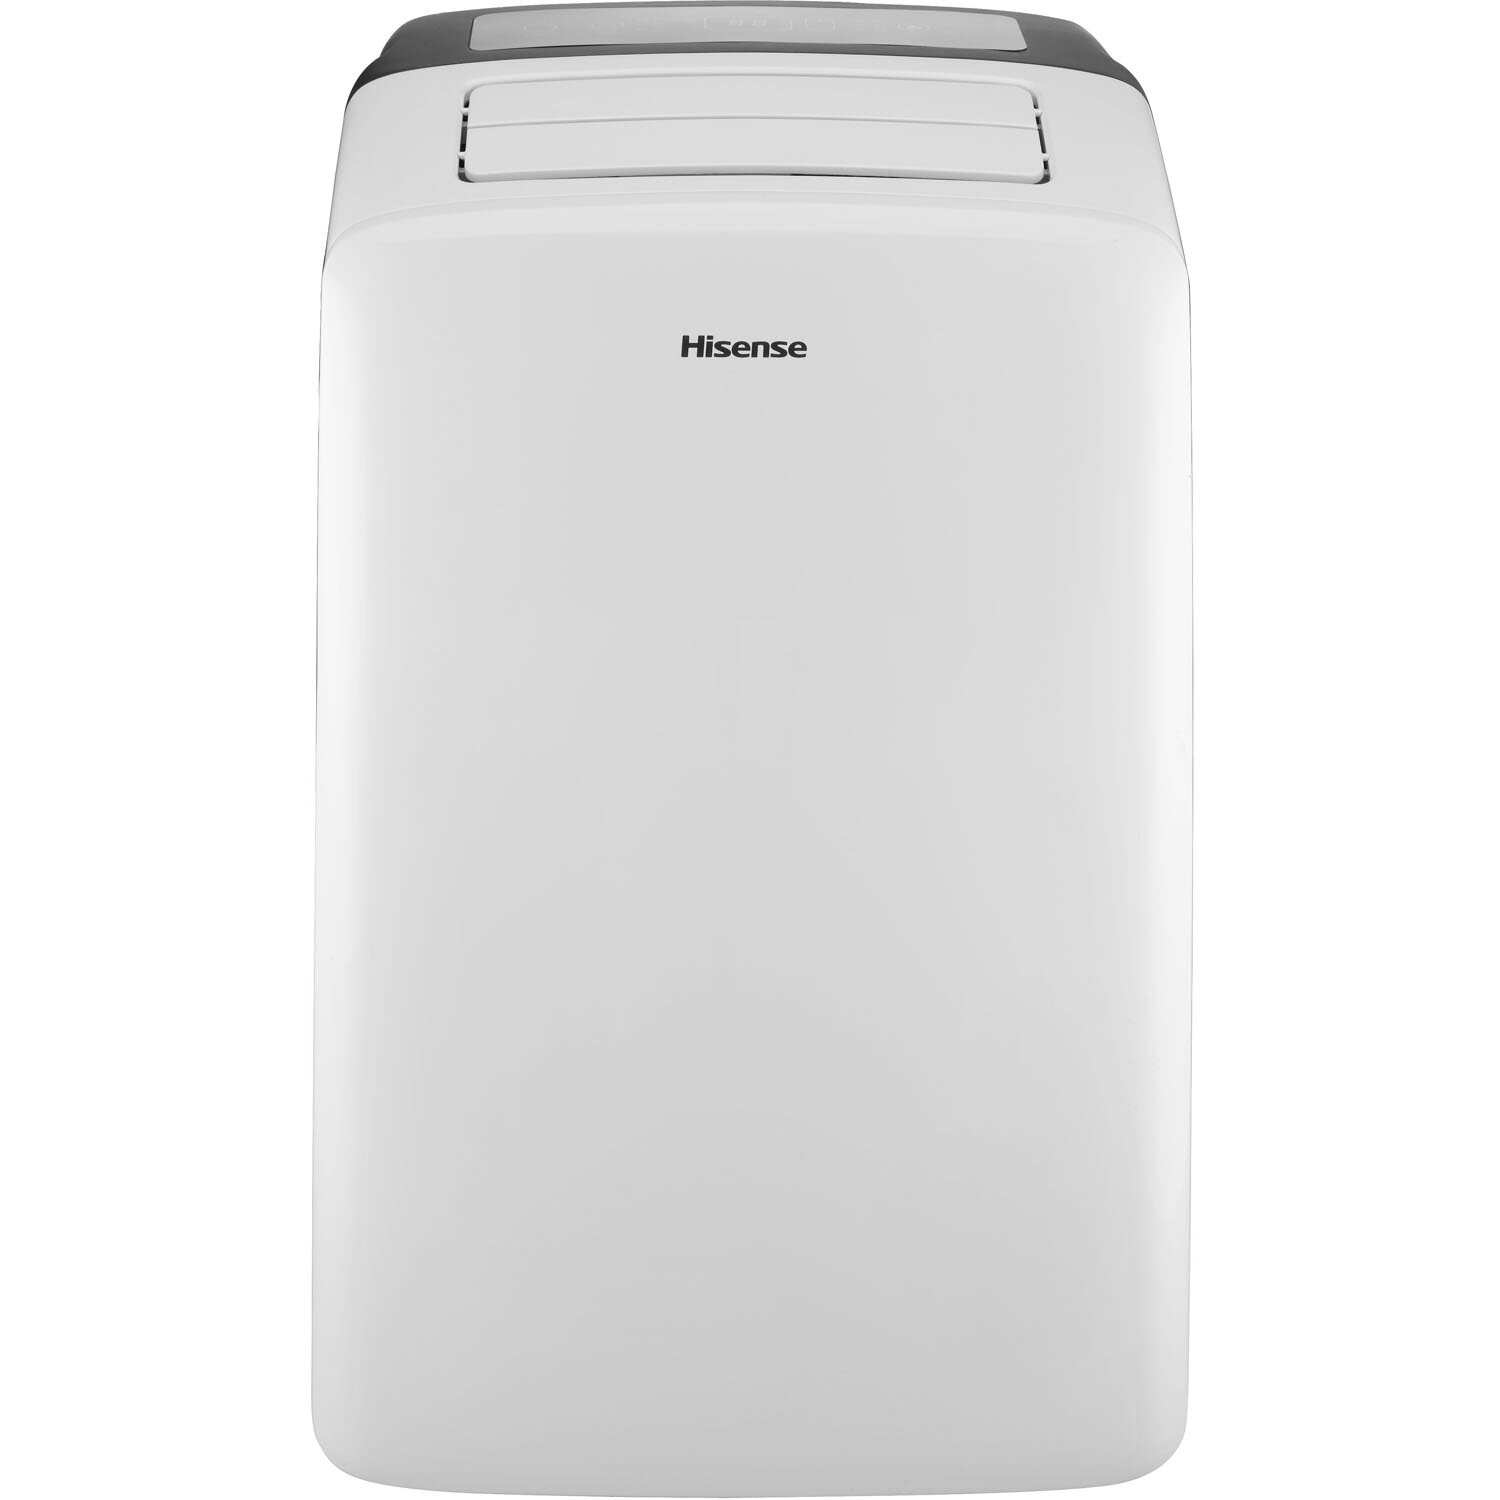 Portable Air Conditioner With Remote & Reviews with bedroom air #464646